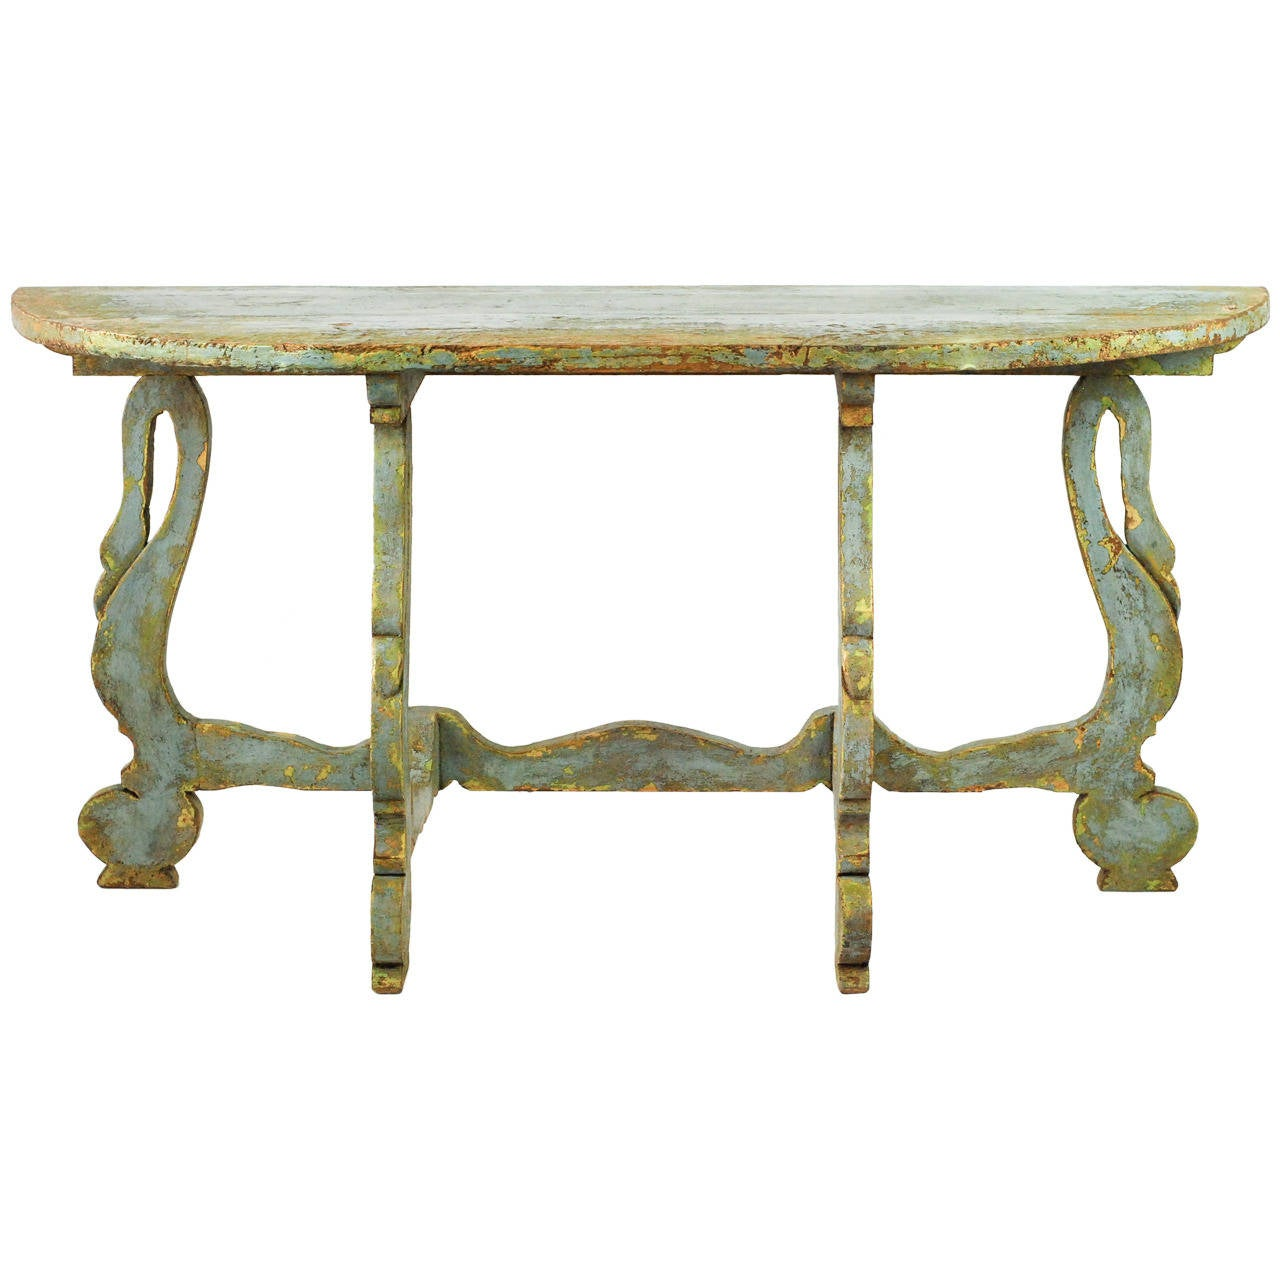 this painted swan demilune table is no longer available